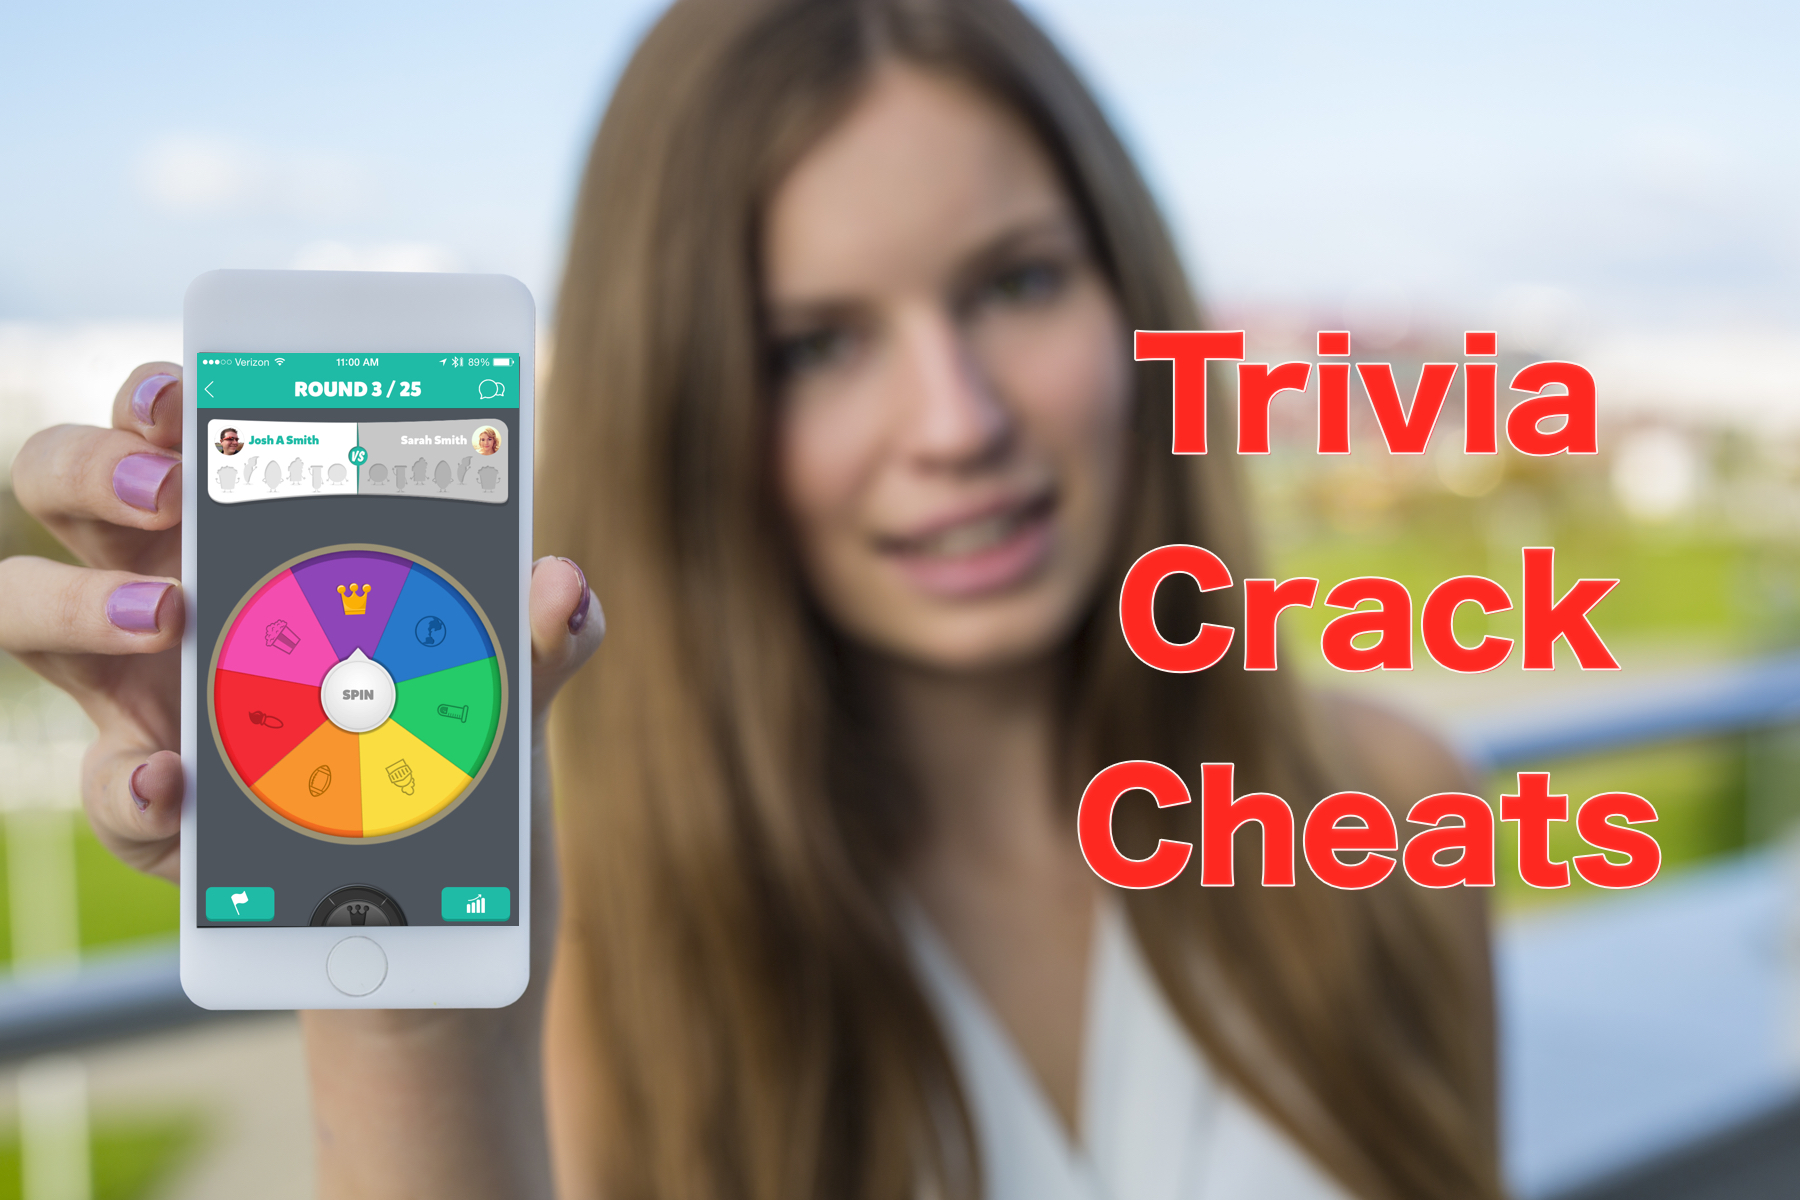 Learn how you can use Trivia Crack cheats to beat your friends.